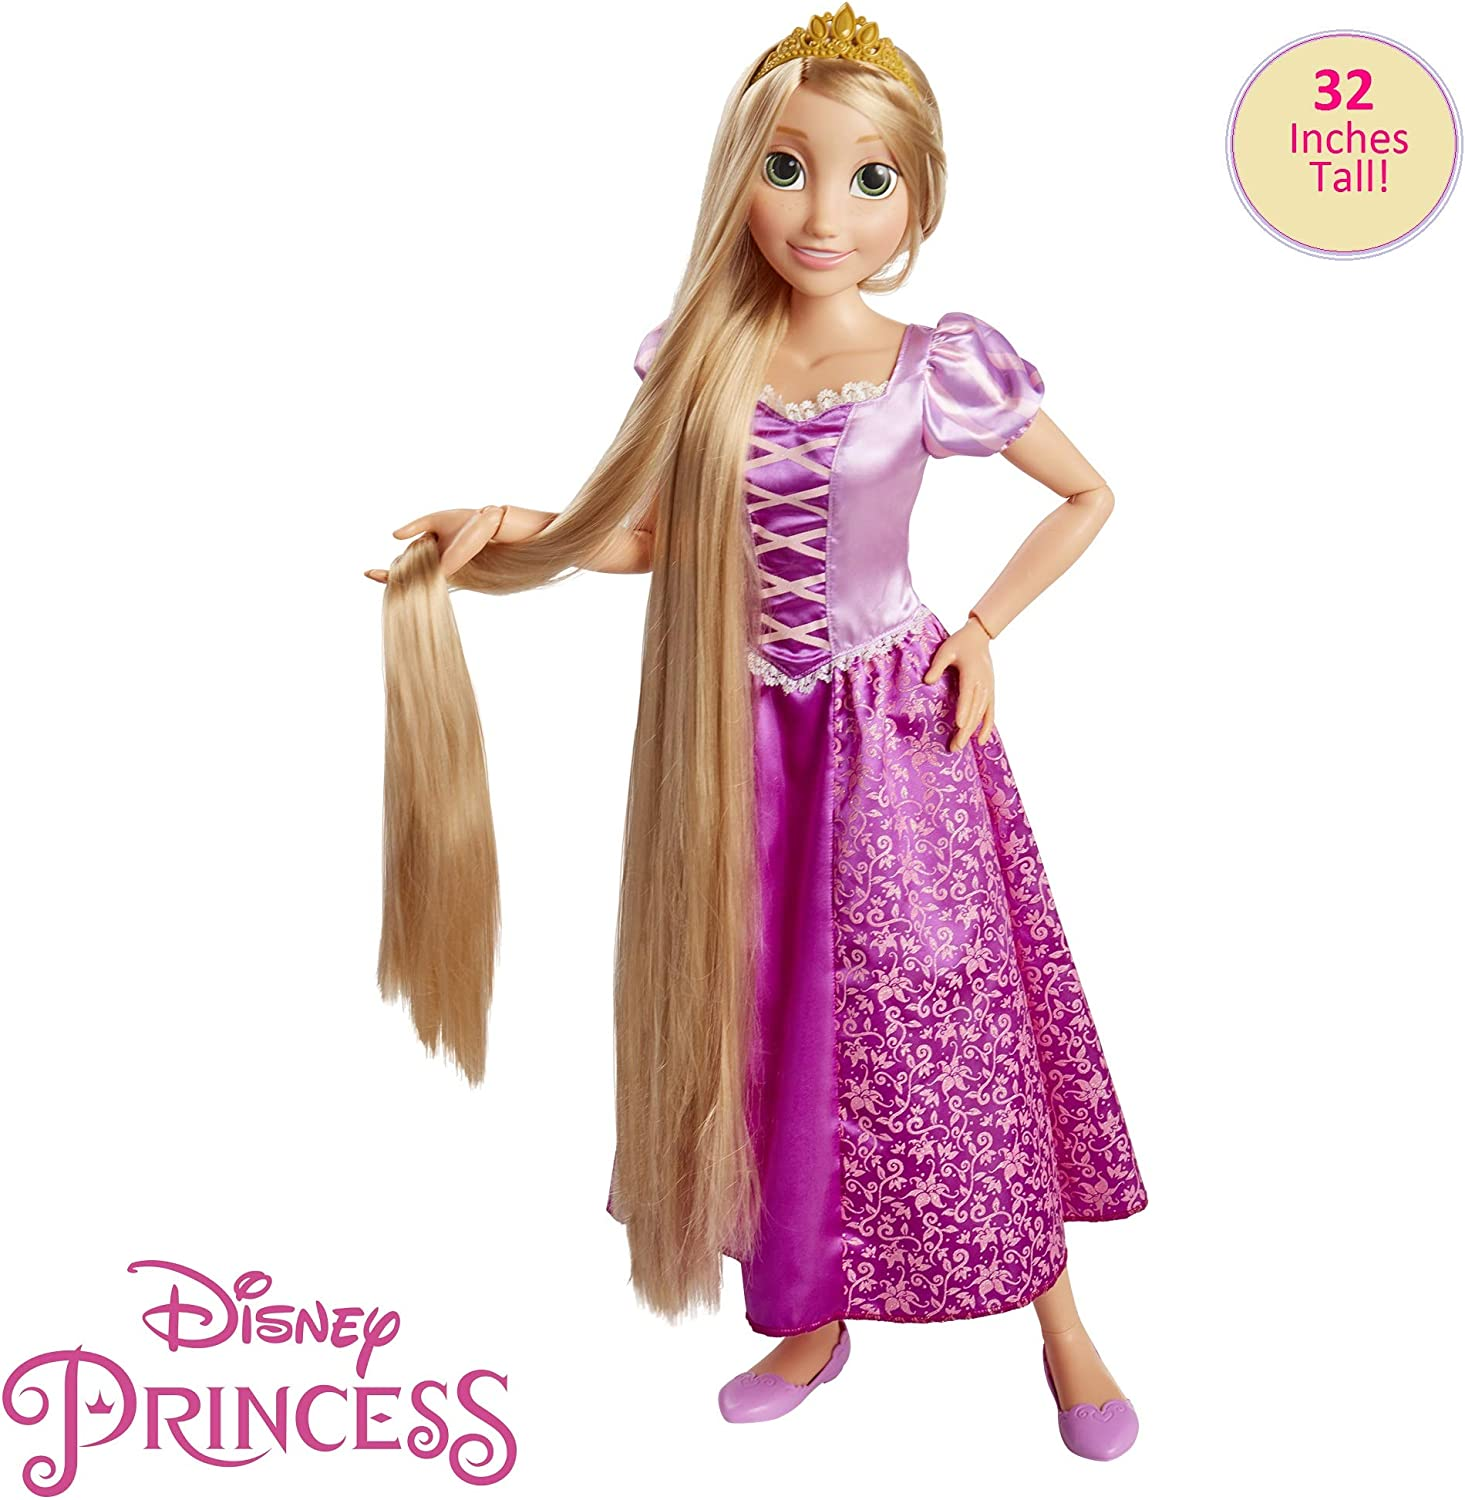 "Disney Princess Rapunzel 32"" Playdate, My Size Articulated Doll, Comes with Brush to Comb Her Long Golden Locks, Movie Inspired Purple Dress, Removable Shoes & A Tiara"